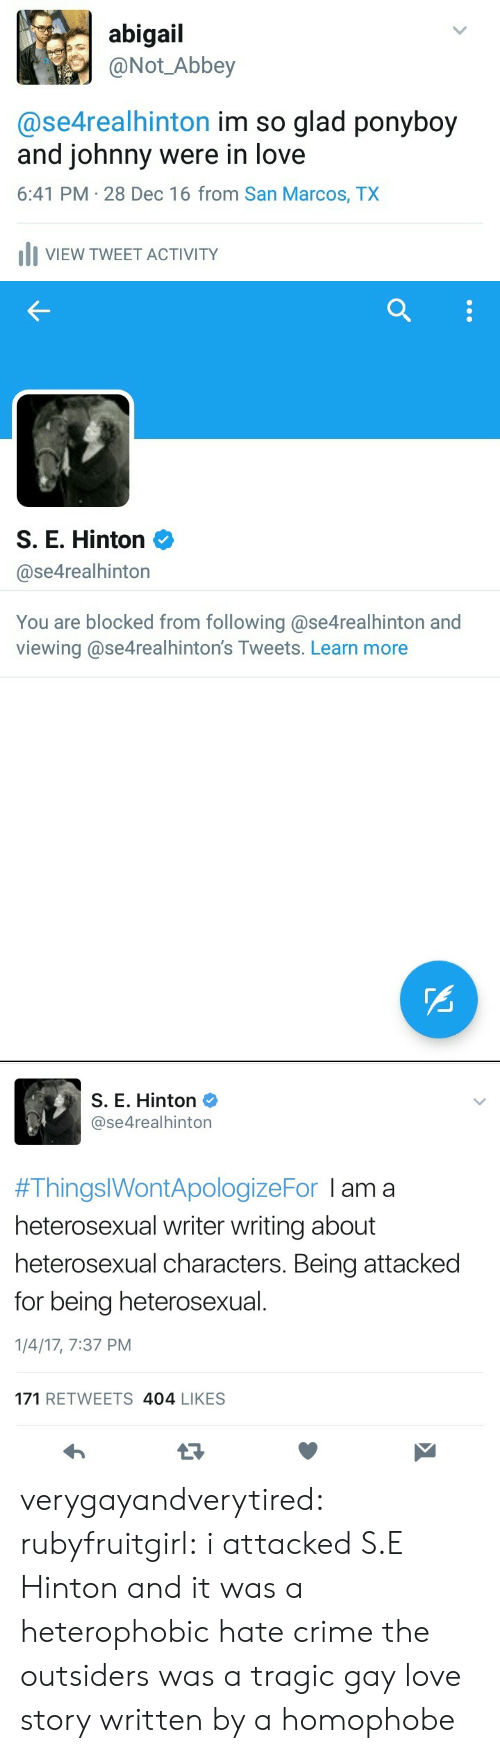 homophobe: abigail  @Not Abbey  @se4realhinton im so glad ponyboy  and johnny were in love  6:41 PM 28 Dec 16 from San Marcos, TX  IVIEW TWEET ACTIVITY   S. E. Hinton 2  @se4realhinton  You are blocked from following @se4realhinton and  viewing @se4realhinton's Tweets. Learn more   S. E. Hinton  @se4realhinton  #ThingslWontApologizeFor I am a  heterosexual writer writing about  heterosexual characters. Being attacked  for being heterosexual  1/4/17, 7:37 PM  171 RETWEETS 404 LIKES verygayandverytired:  rubyfruitgirl:  i attacked S.E Hinton and it was a  heterophobic hate crime  the outsiders was a tragic gay love story written by a homophobe